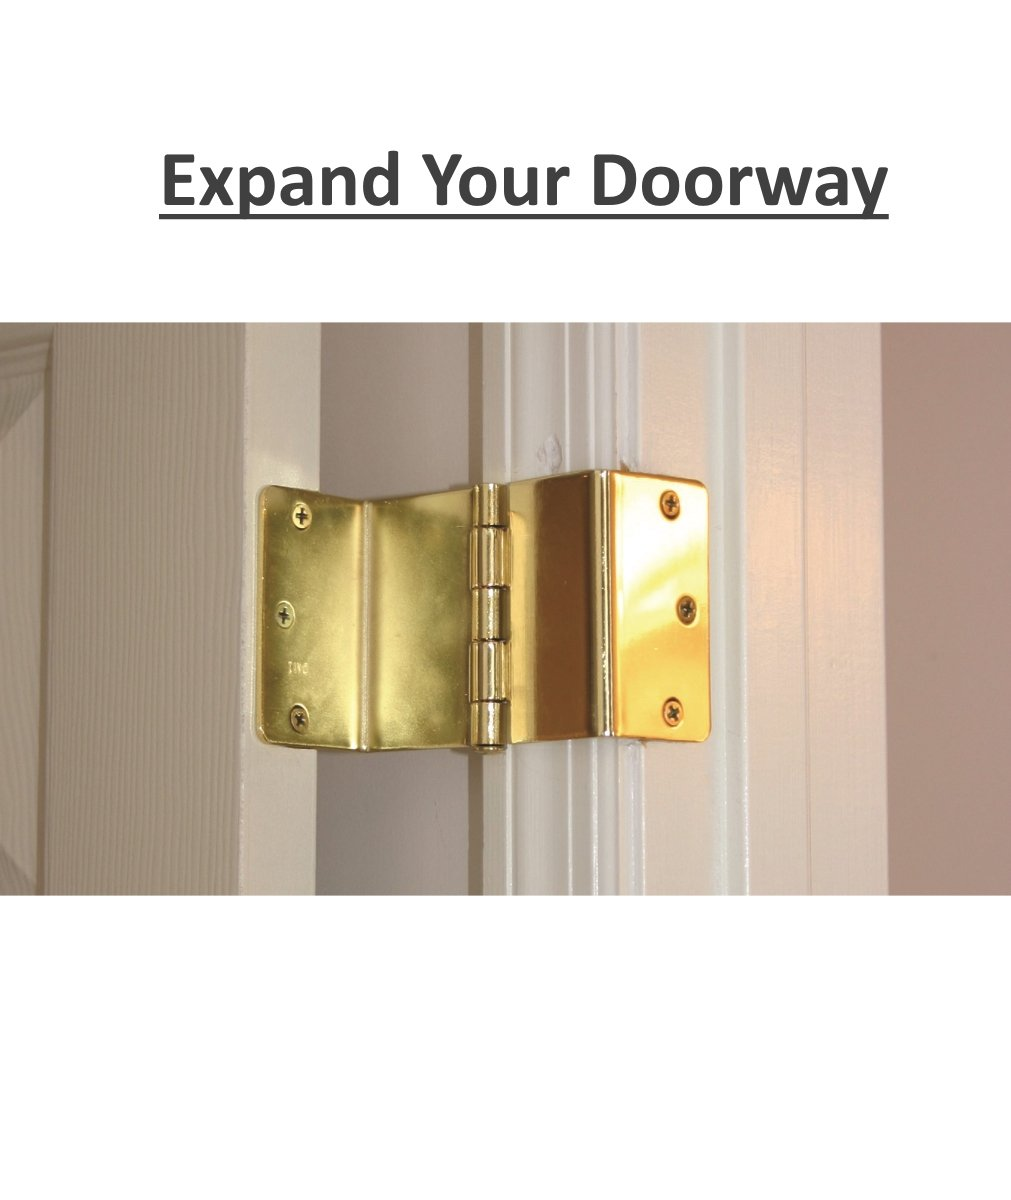 Handicap Brass Expandable Door Hinges - 2 Hinges by MARS Wellness (Image #4)